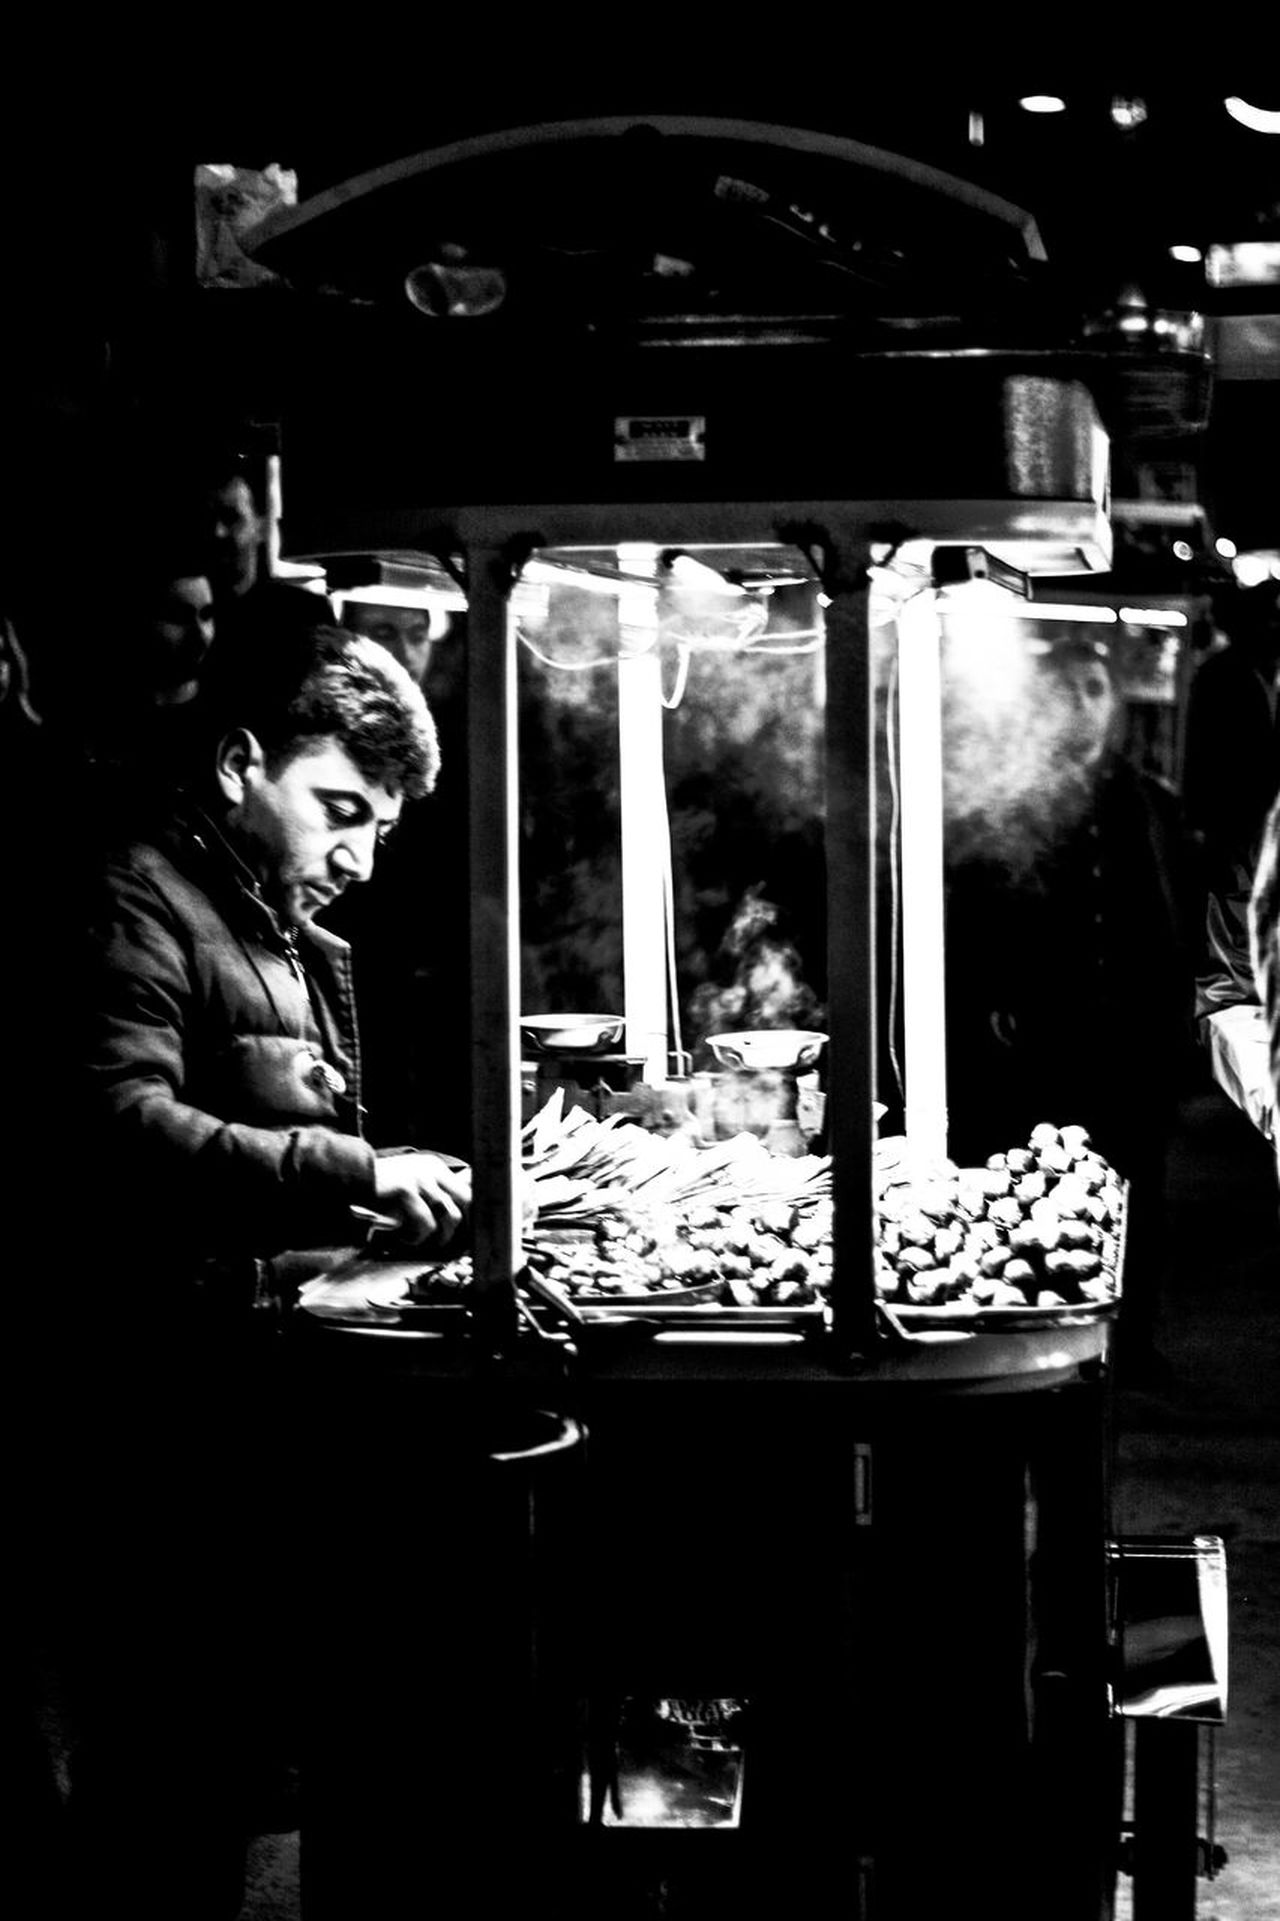 EyeEmNewHere Monochrome Istanbul Turkey Black & White Blackandwhite Black And White Chestnut Taksim Square Istanbul Archival Adults Only Only Men Indoors  Service AdultTaksim Meydanı People Occupation Men Night Fast Food Taksimbeyoglu Taks EyeEm Diversity The Street Photographer - 2017 EyeEm Awards Live For The Story